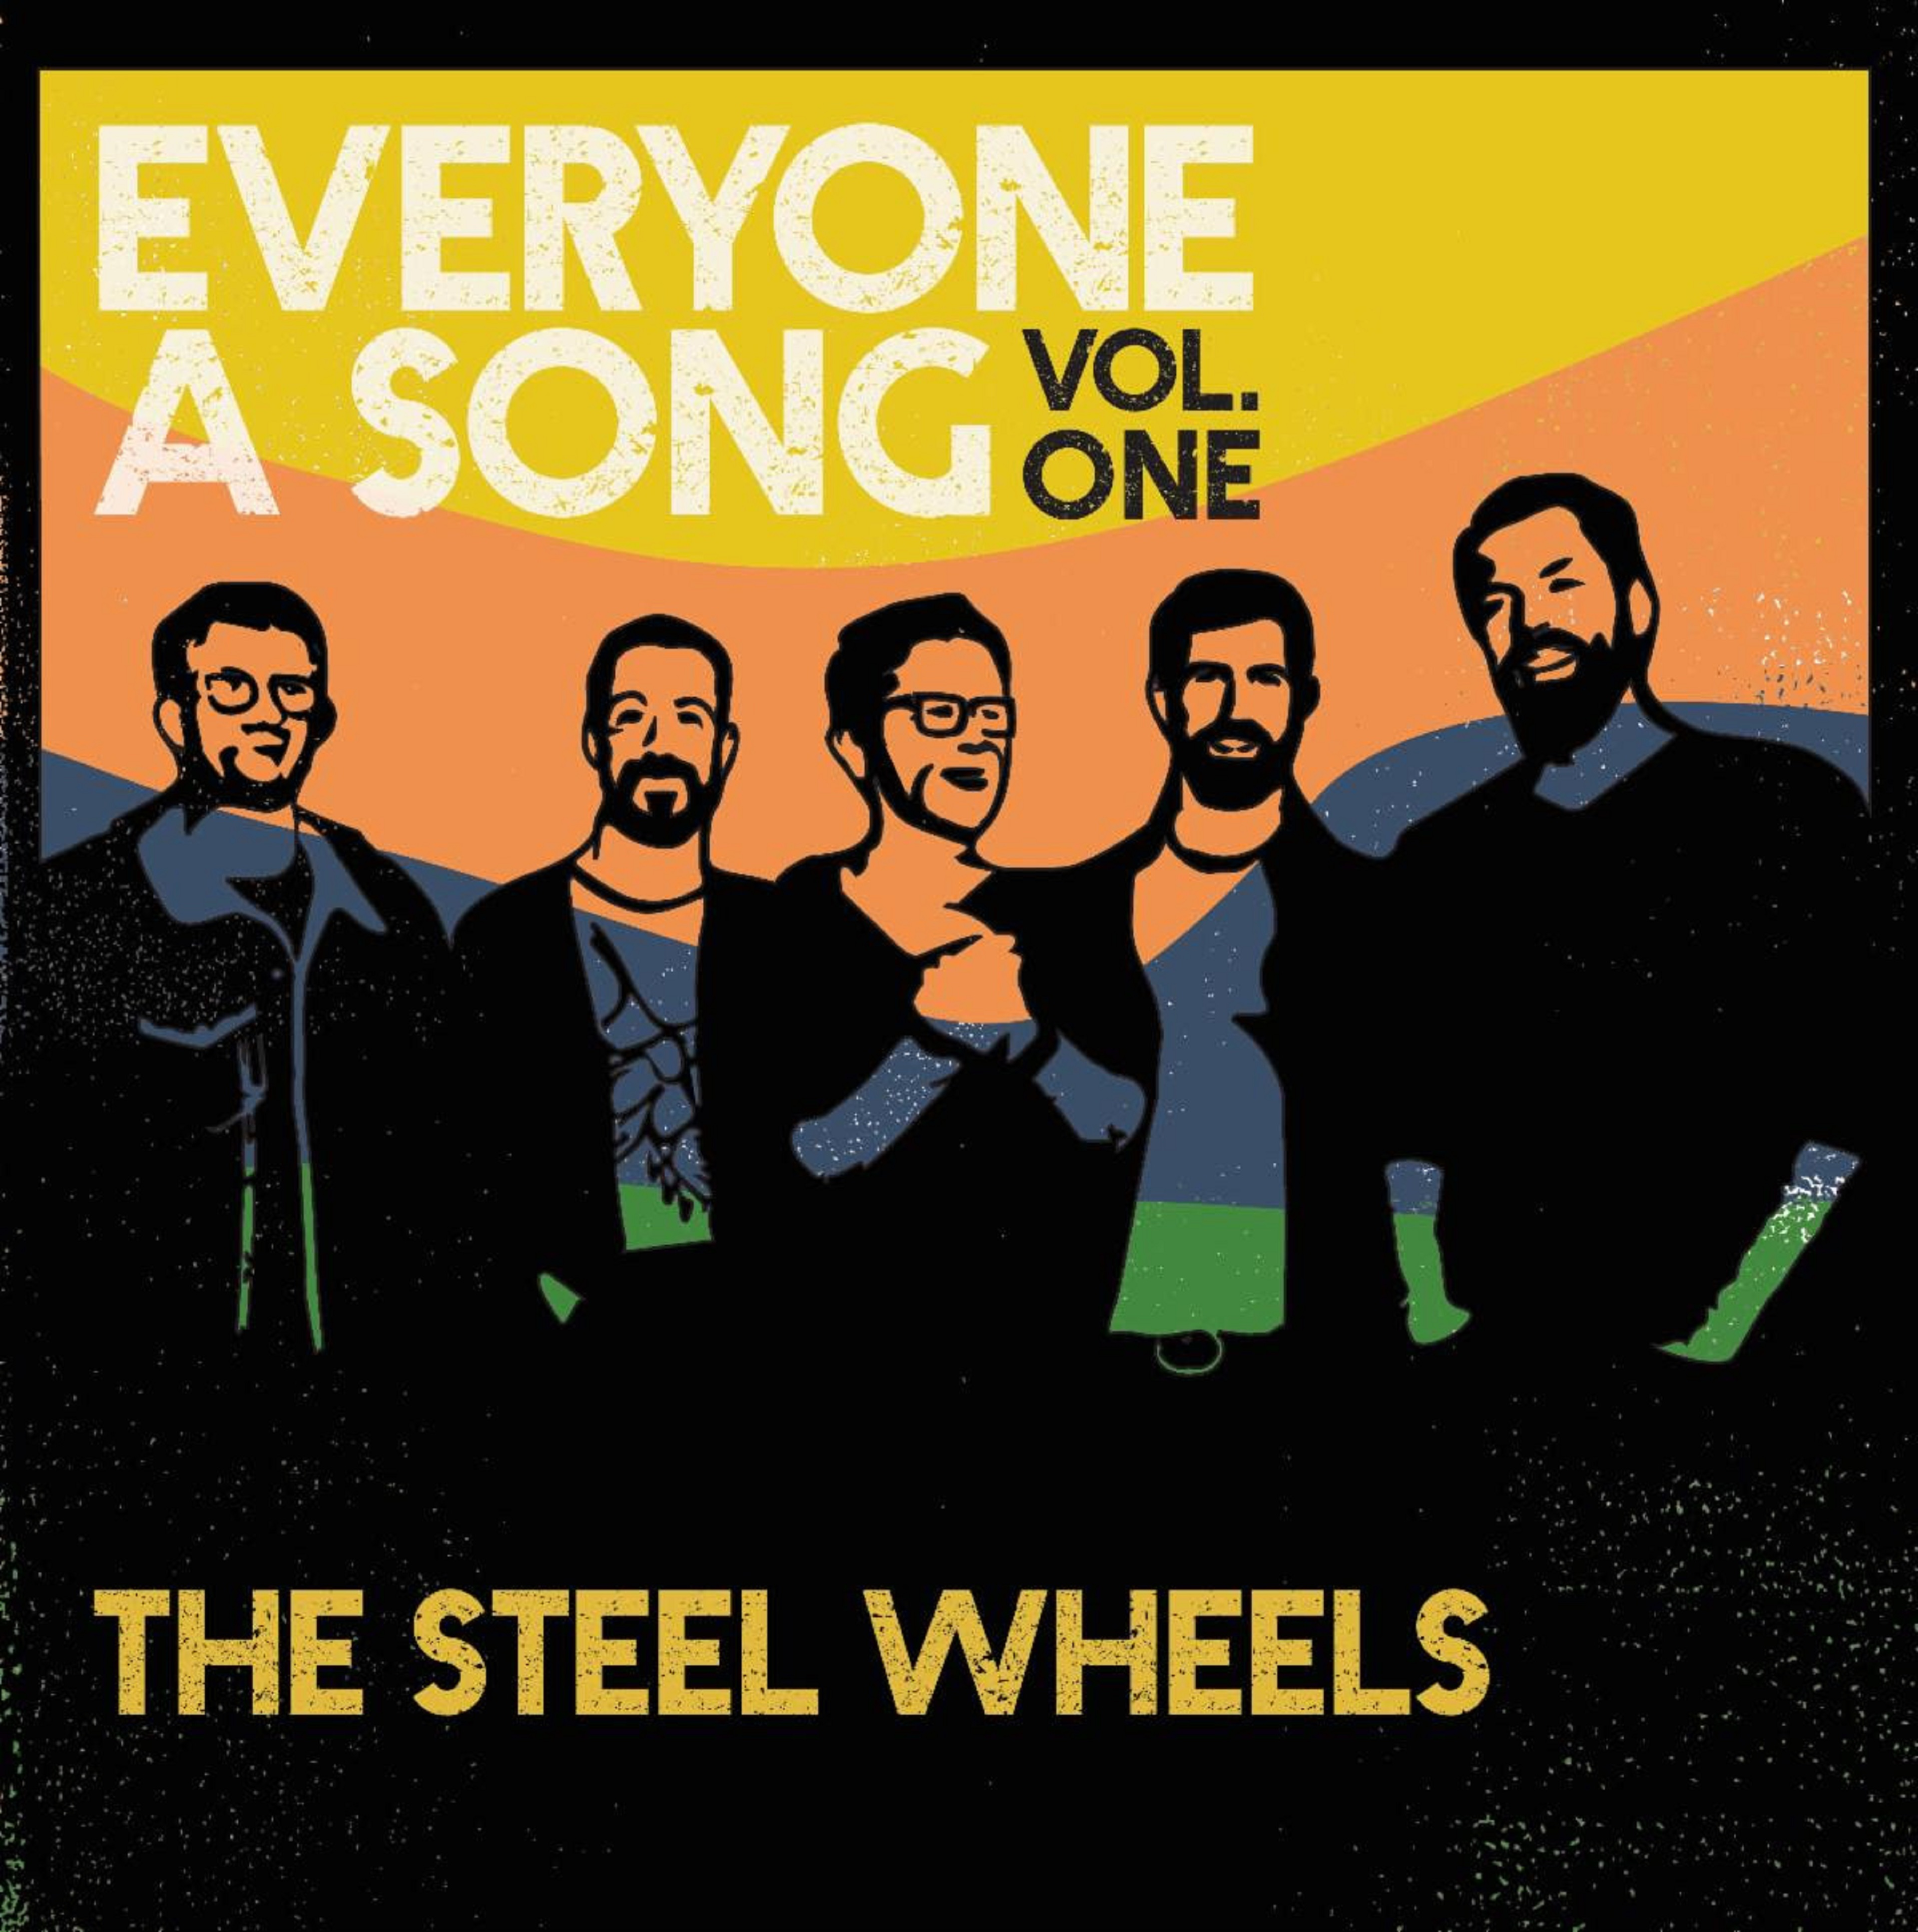 The Steel Wheels Set The Personal Experiences Of Their Supporters To Song